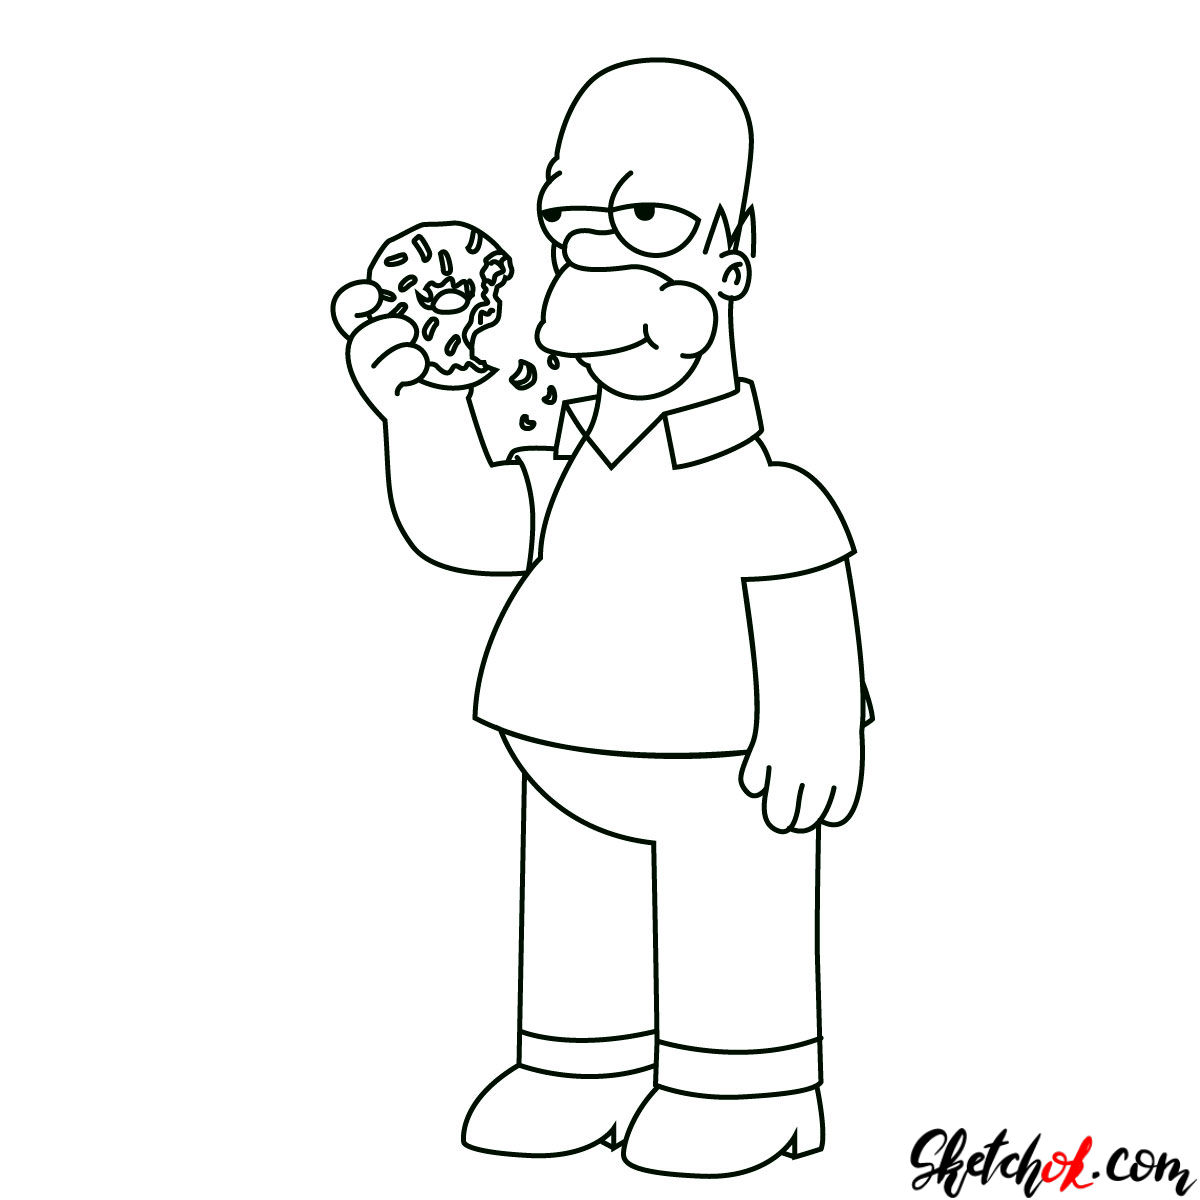 How to draw Homer Simpson eating a donut - step 11